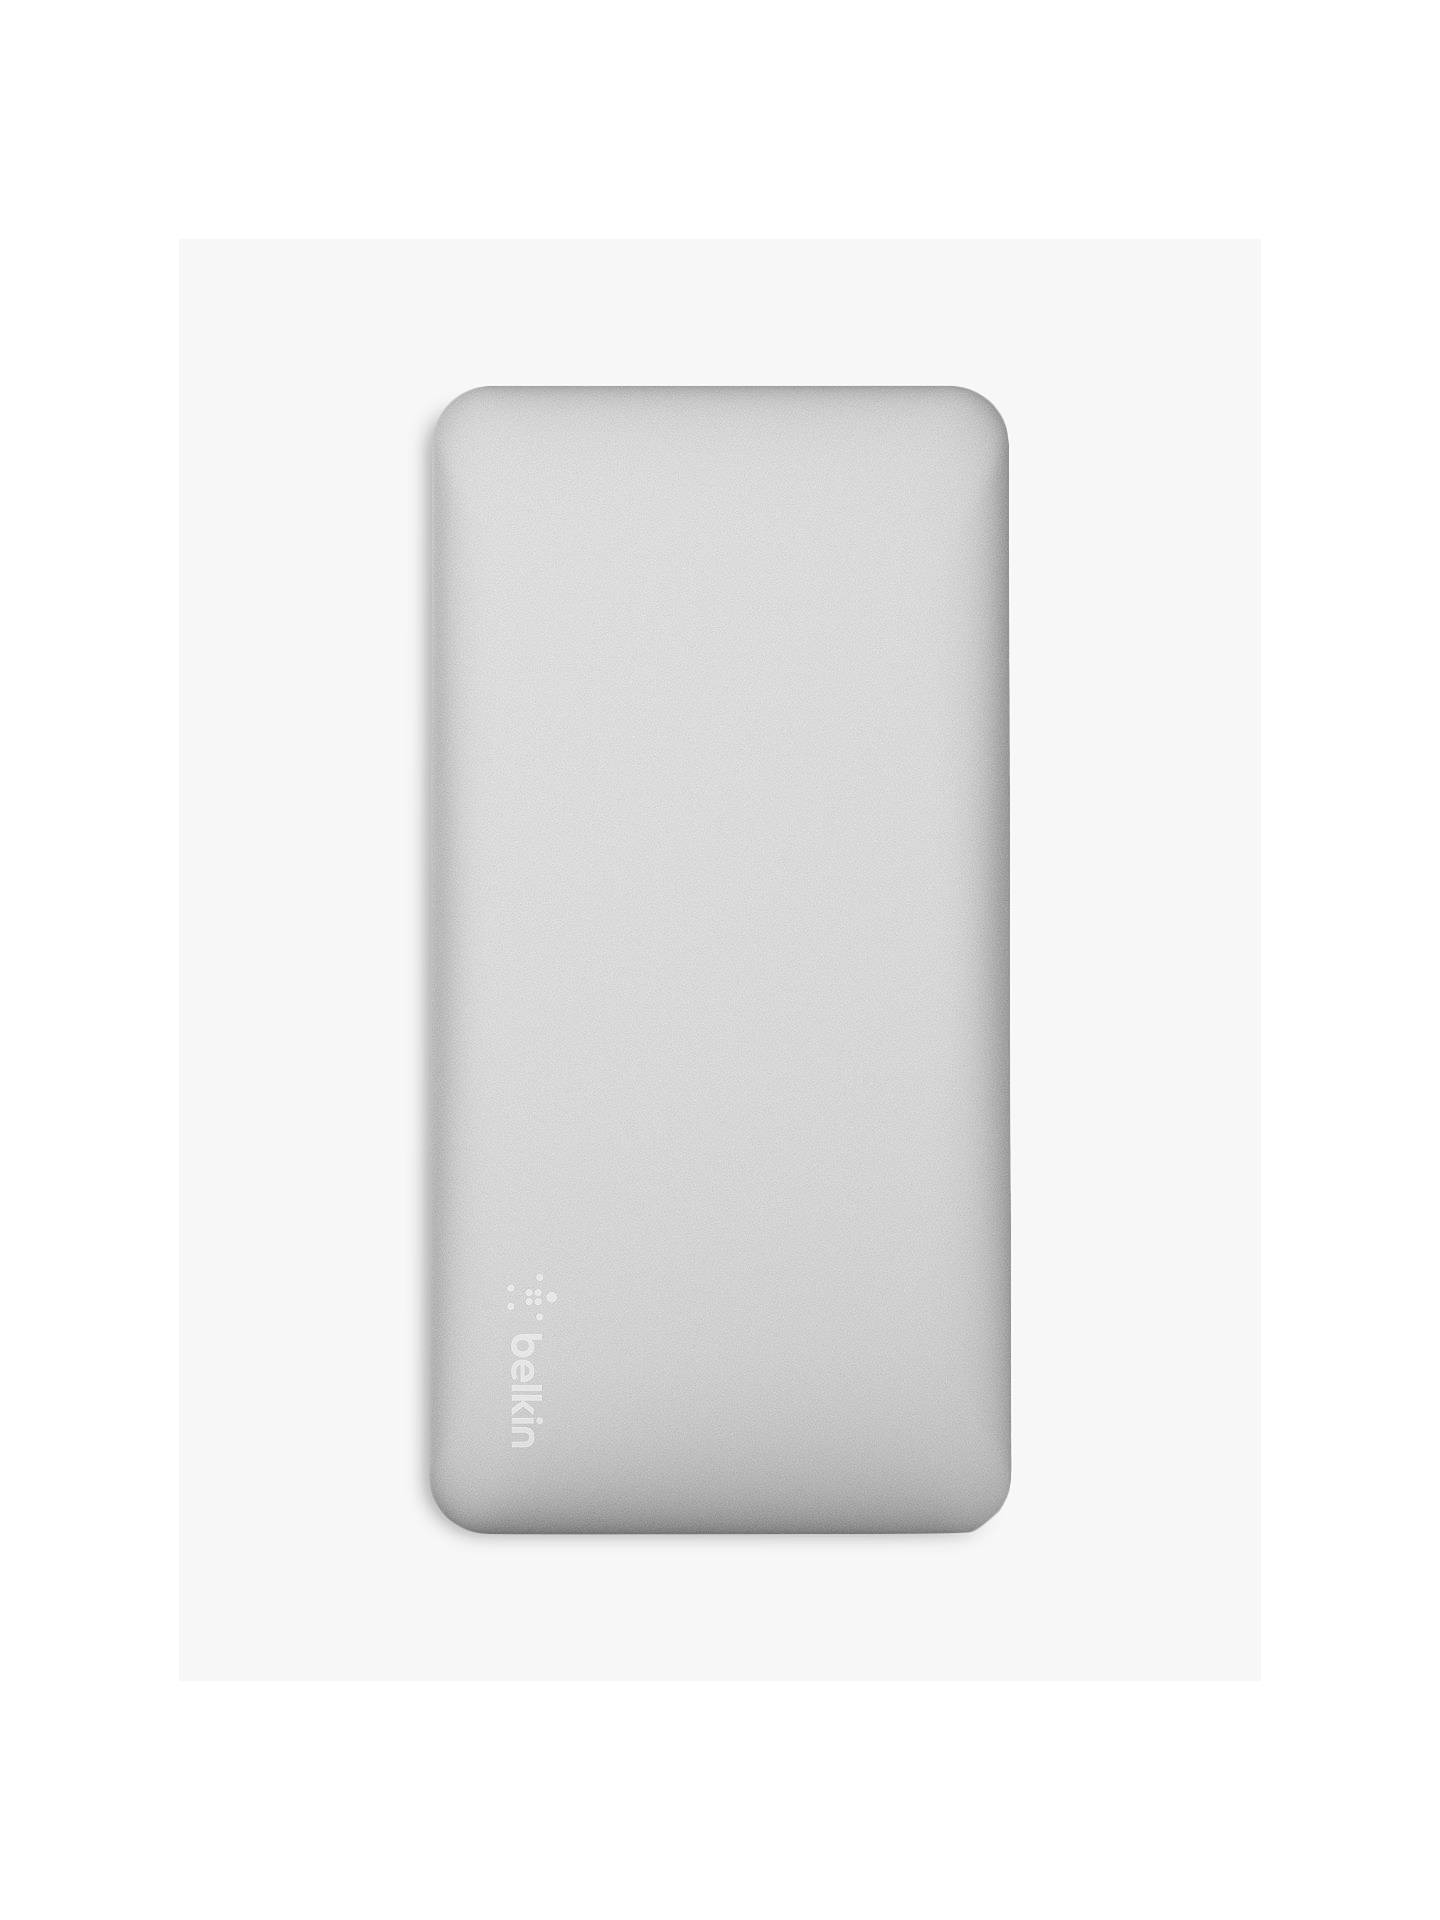 Belkin Pocket Power 10K Portable Power Bank Charger, Dual Port USB, Silver